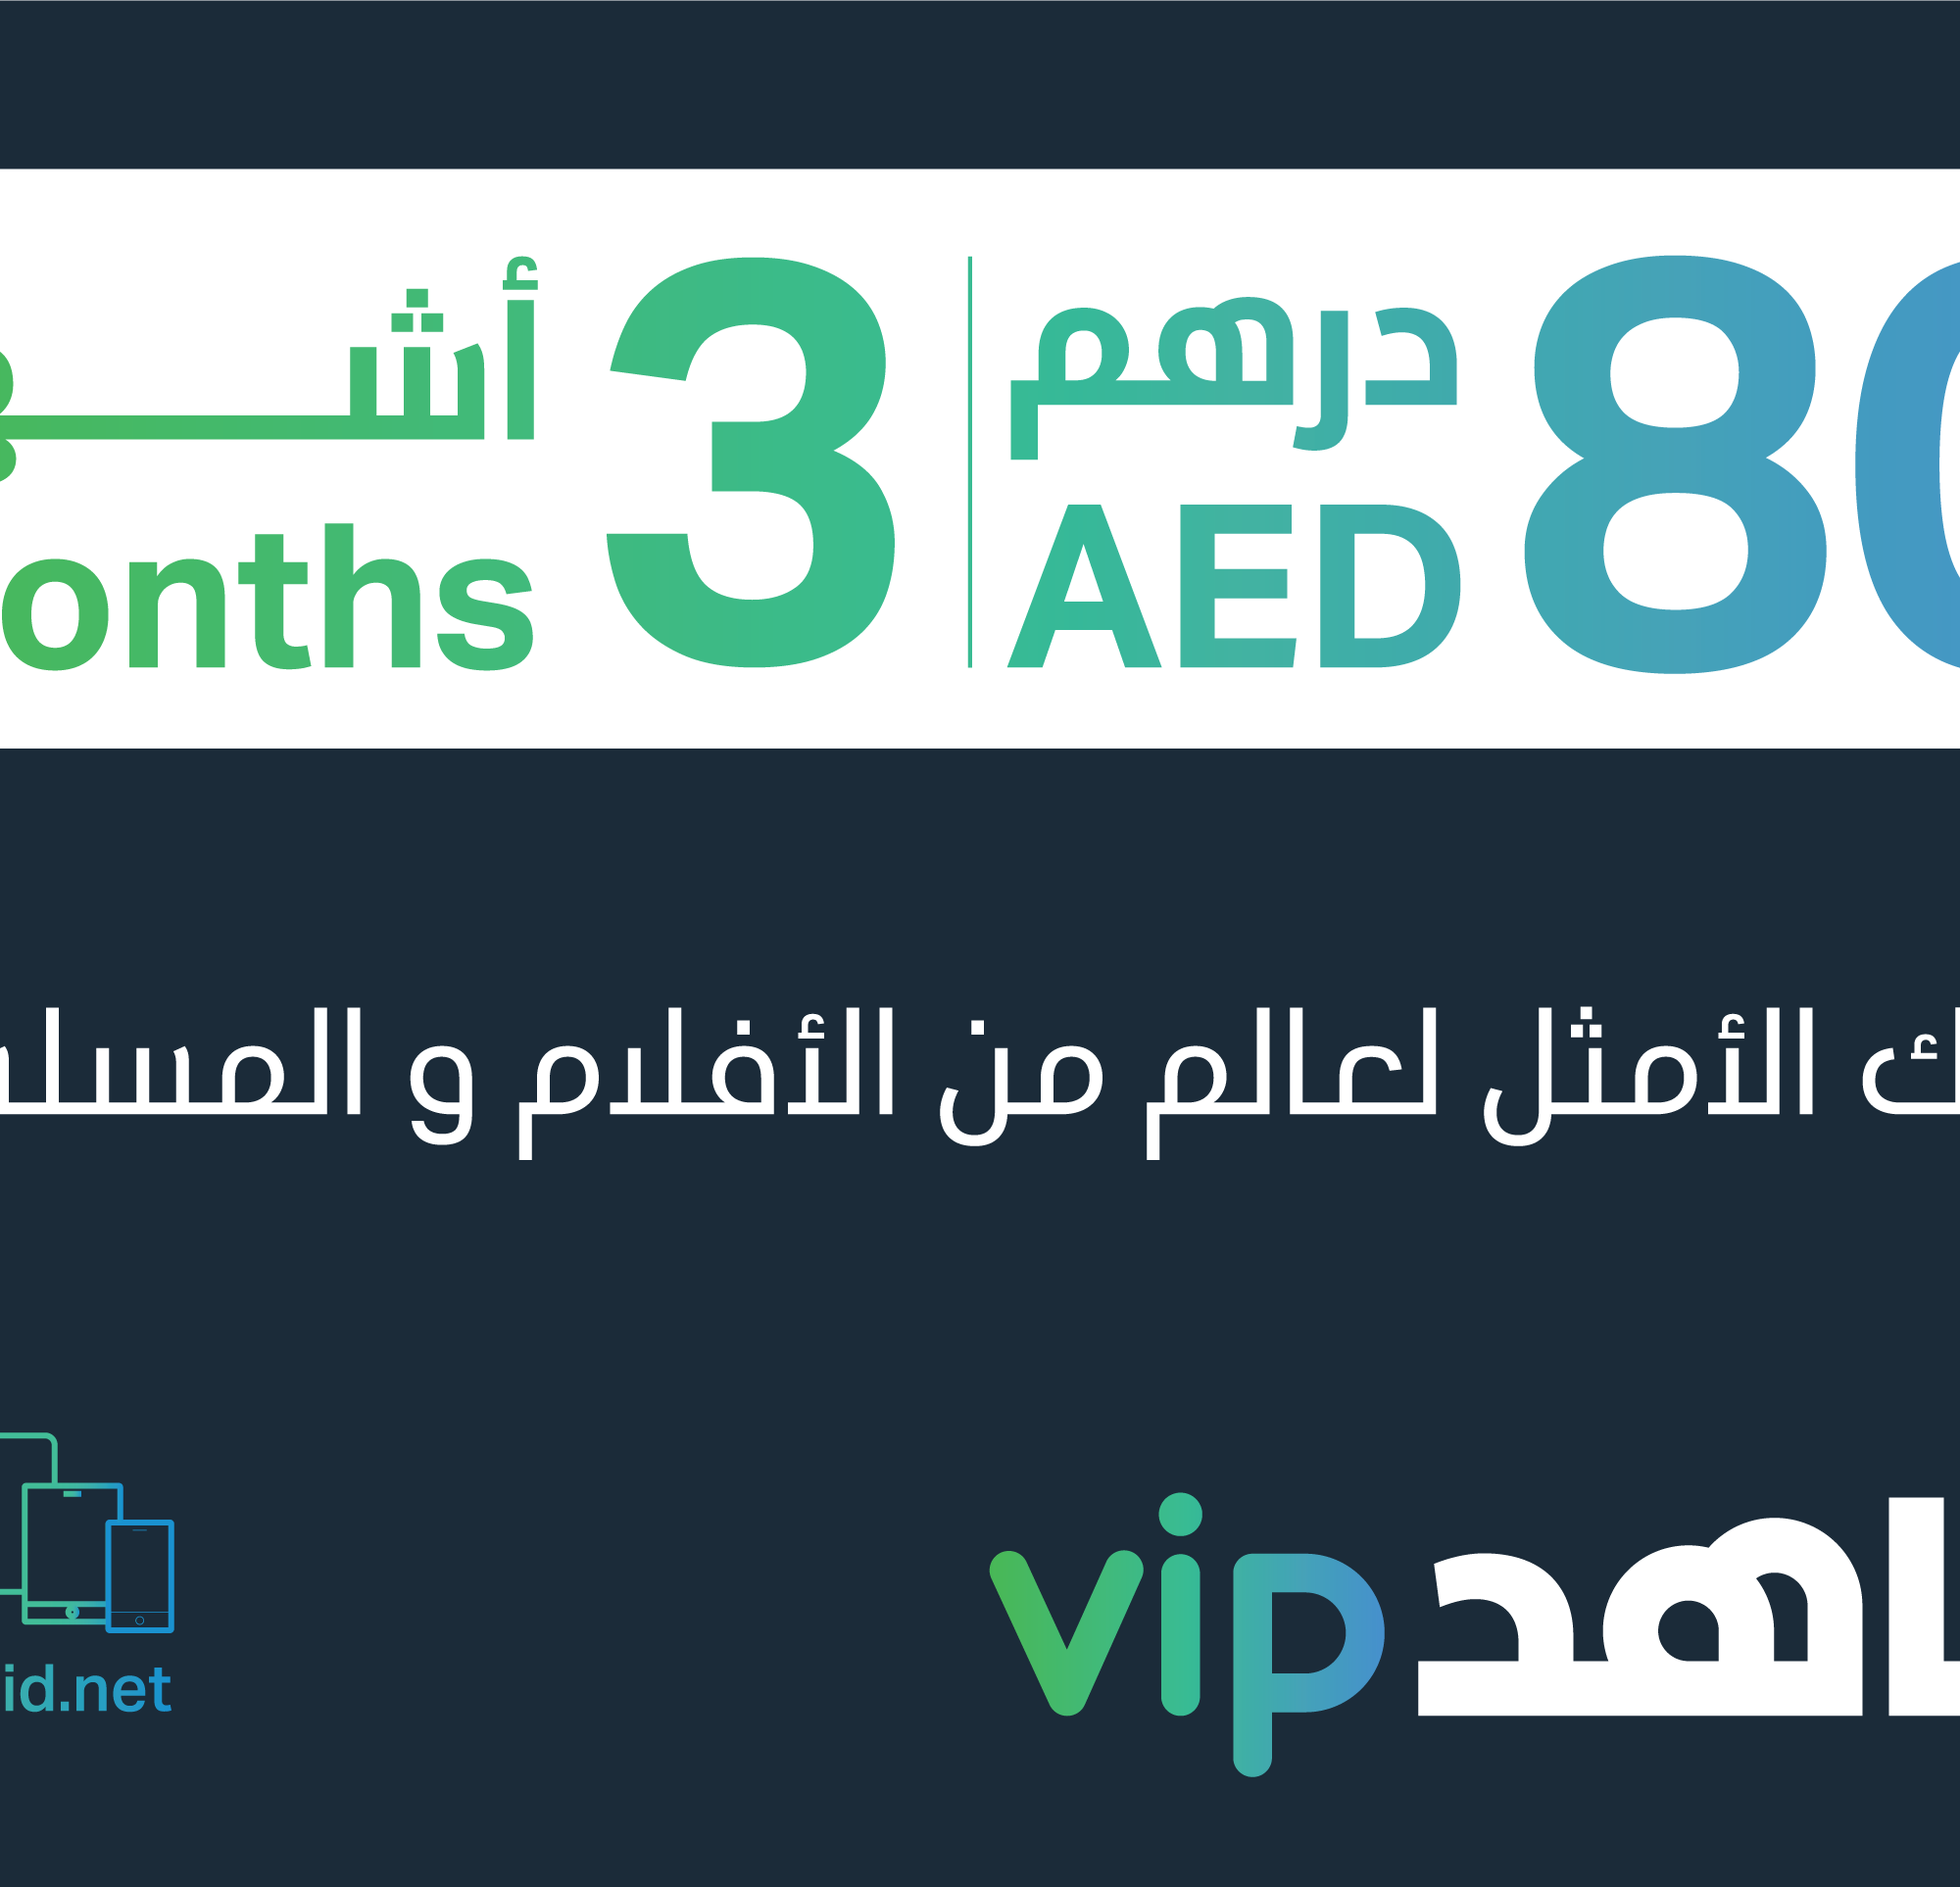 Shahid VIP 3 Months Subscription GCC - Email Delivery